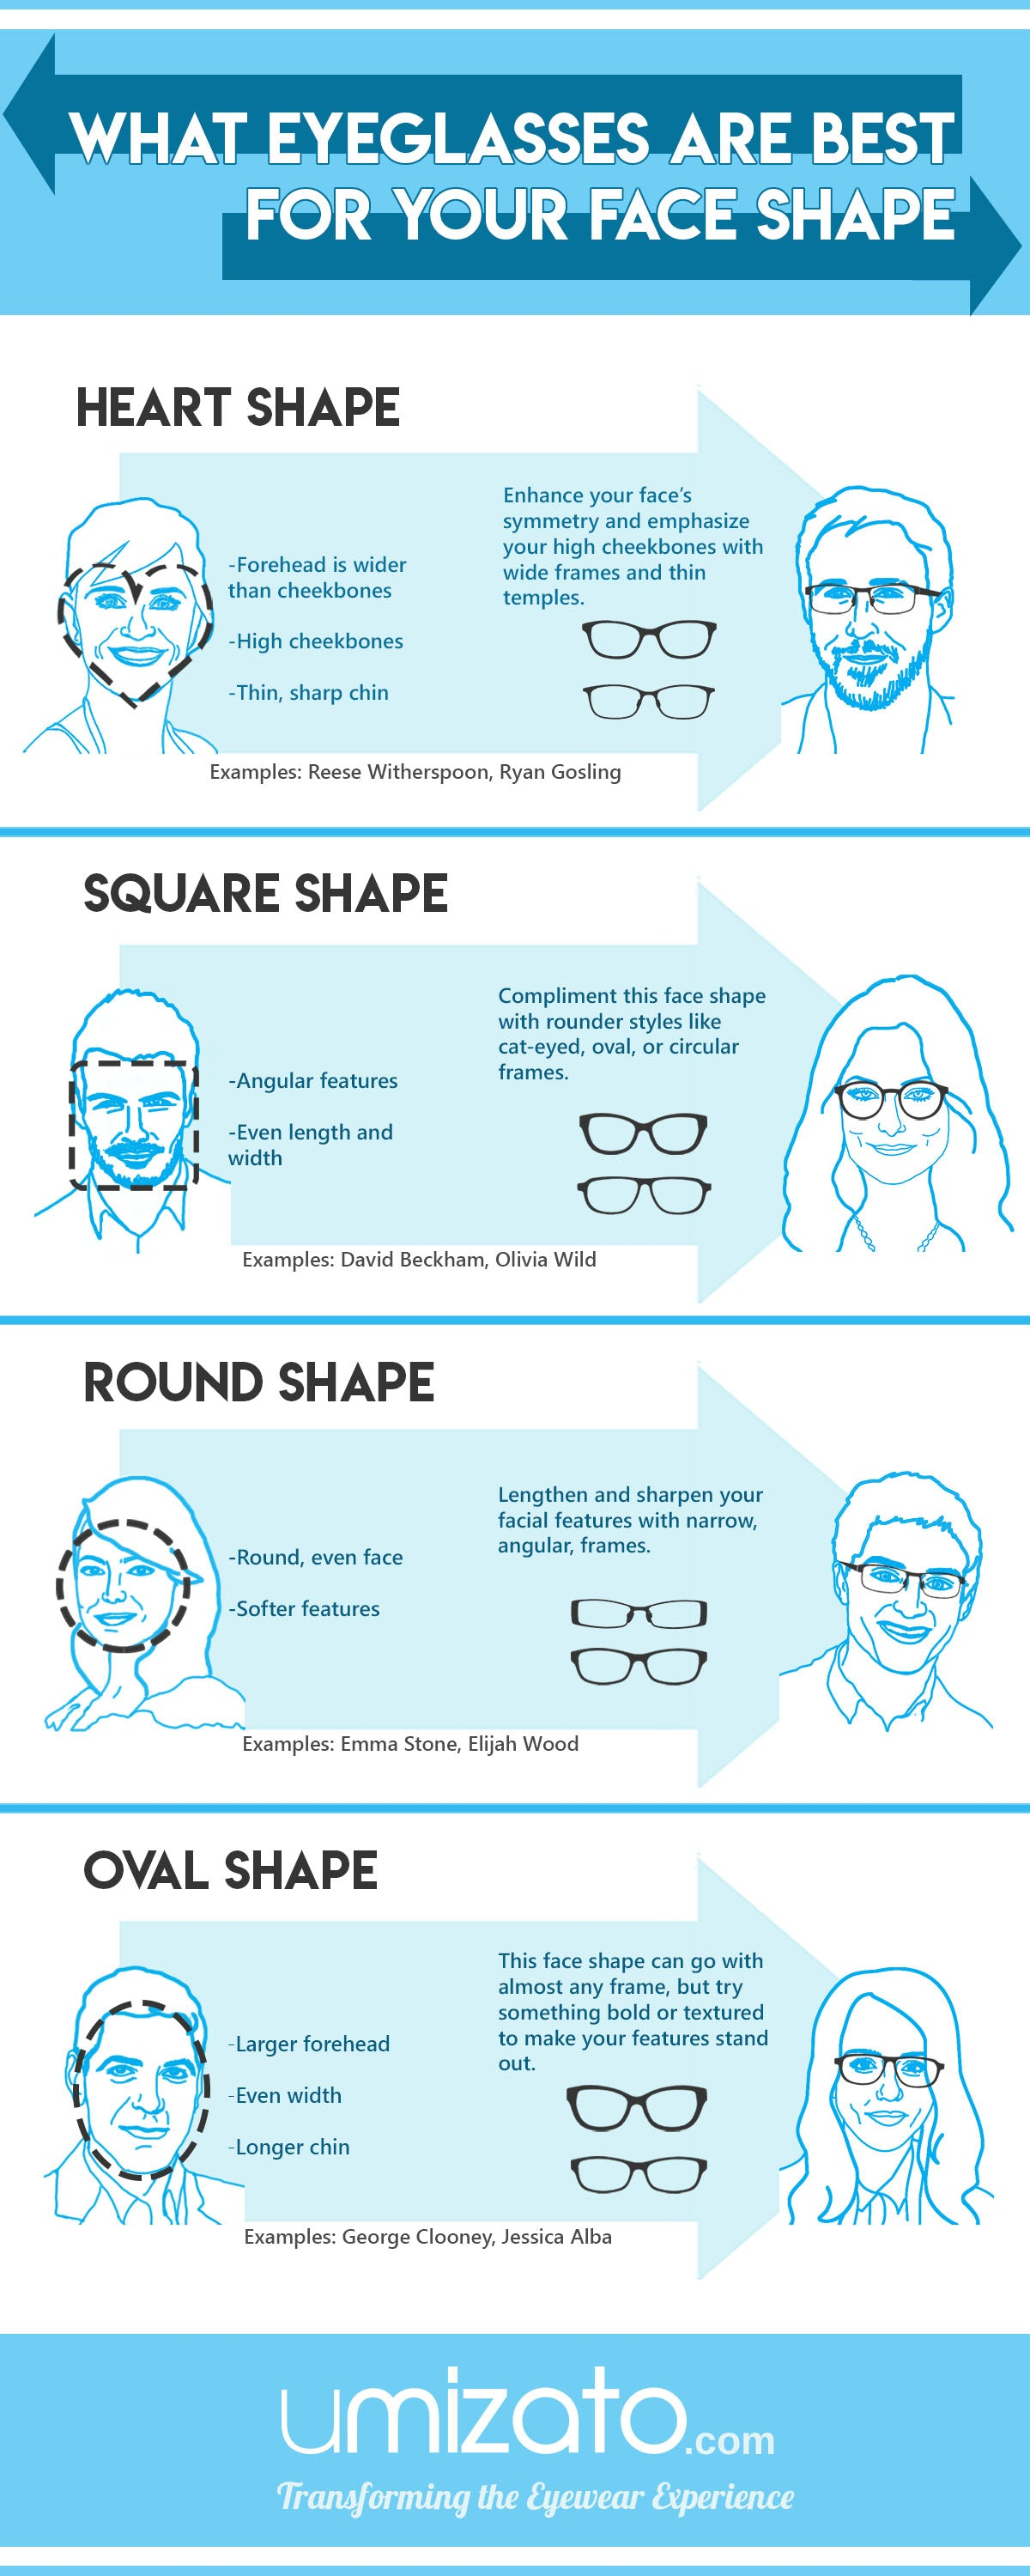 How to Find the Right Glasses for your Face Shape Infographic